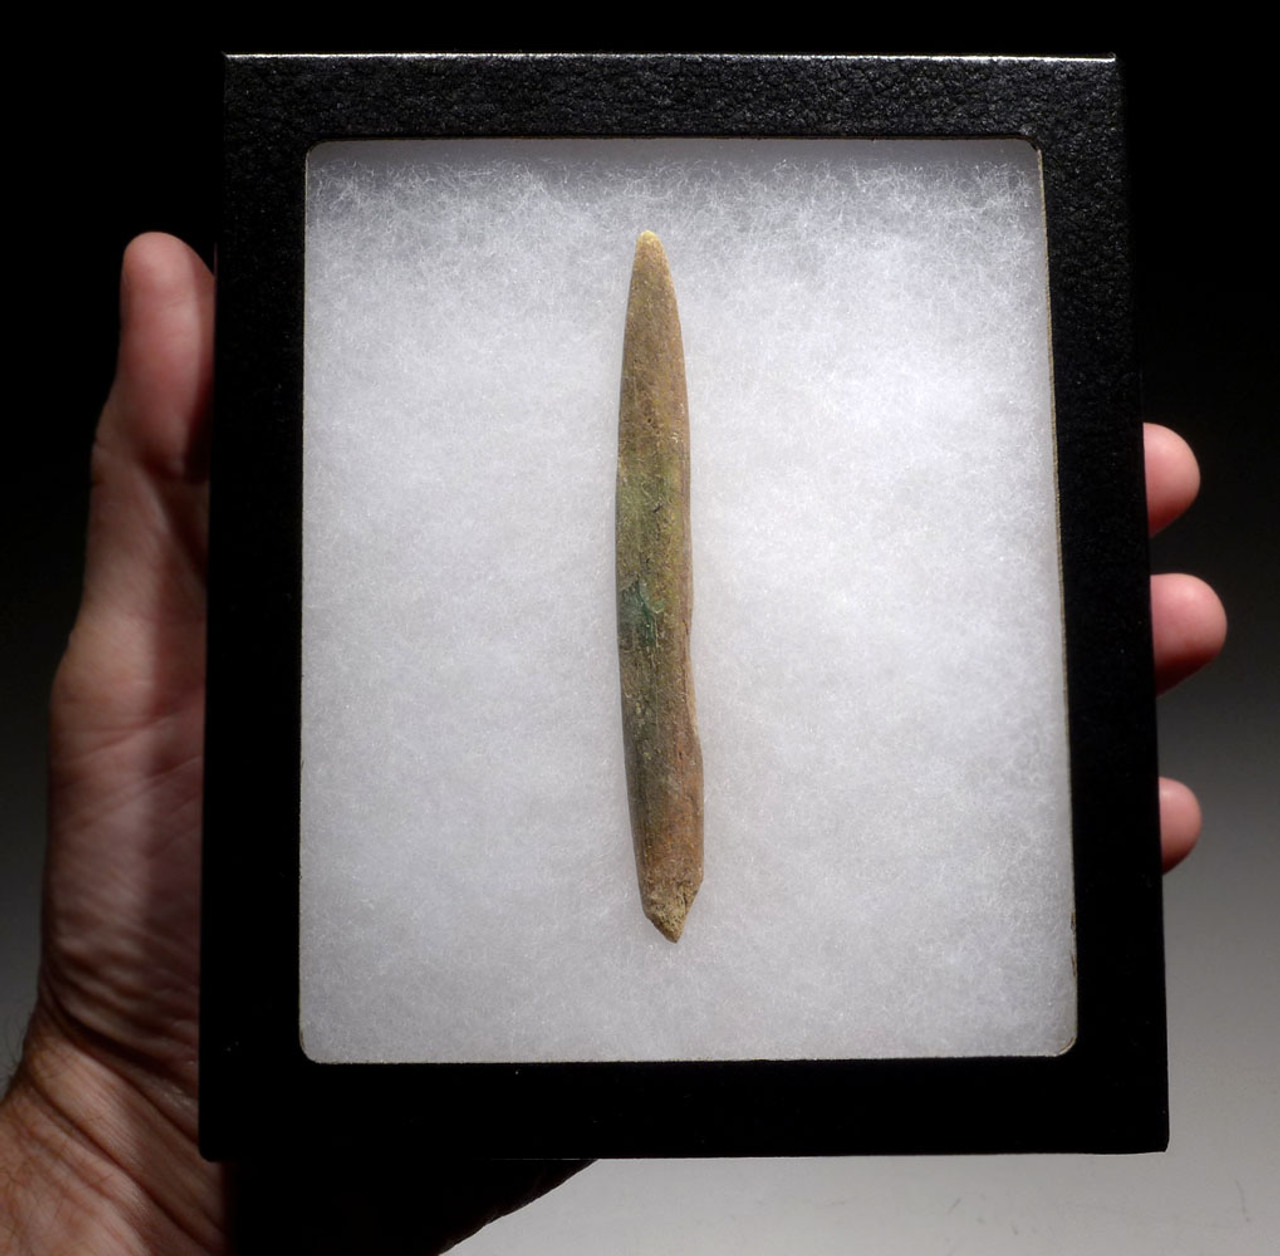 RARE LARGE BONE ARROWHEAD WITH GREEN ANCIENT BRONZE PATINA STAINING FROM THE BRONZE AGE NEAR EASTERN LURISTAN CULTURE *LUR132